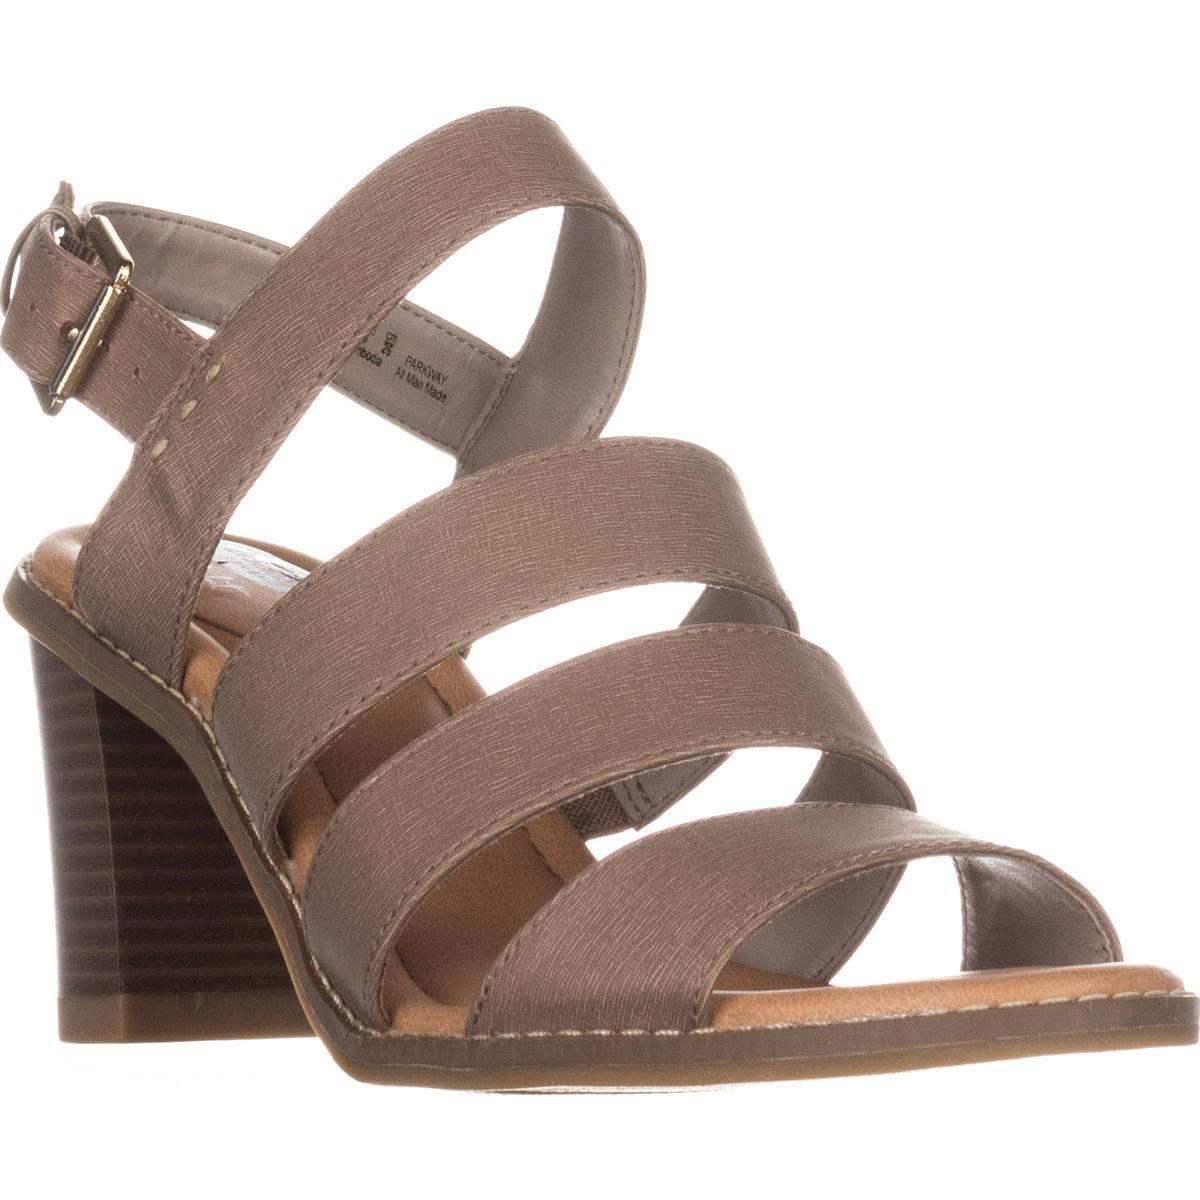 Womens Dr. Scholls Parkway Strappy Comfort Sandals, Taupe, 9 US / 39 EU